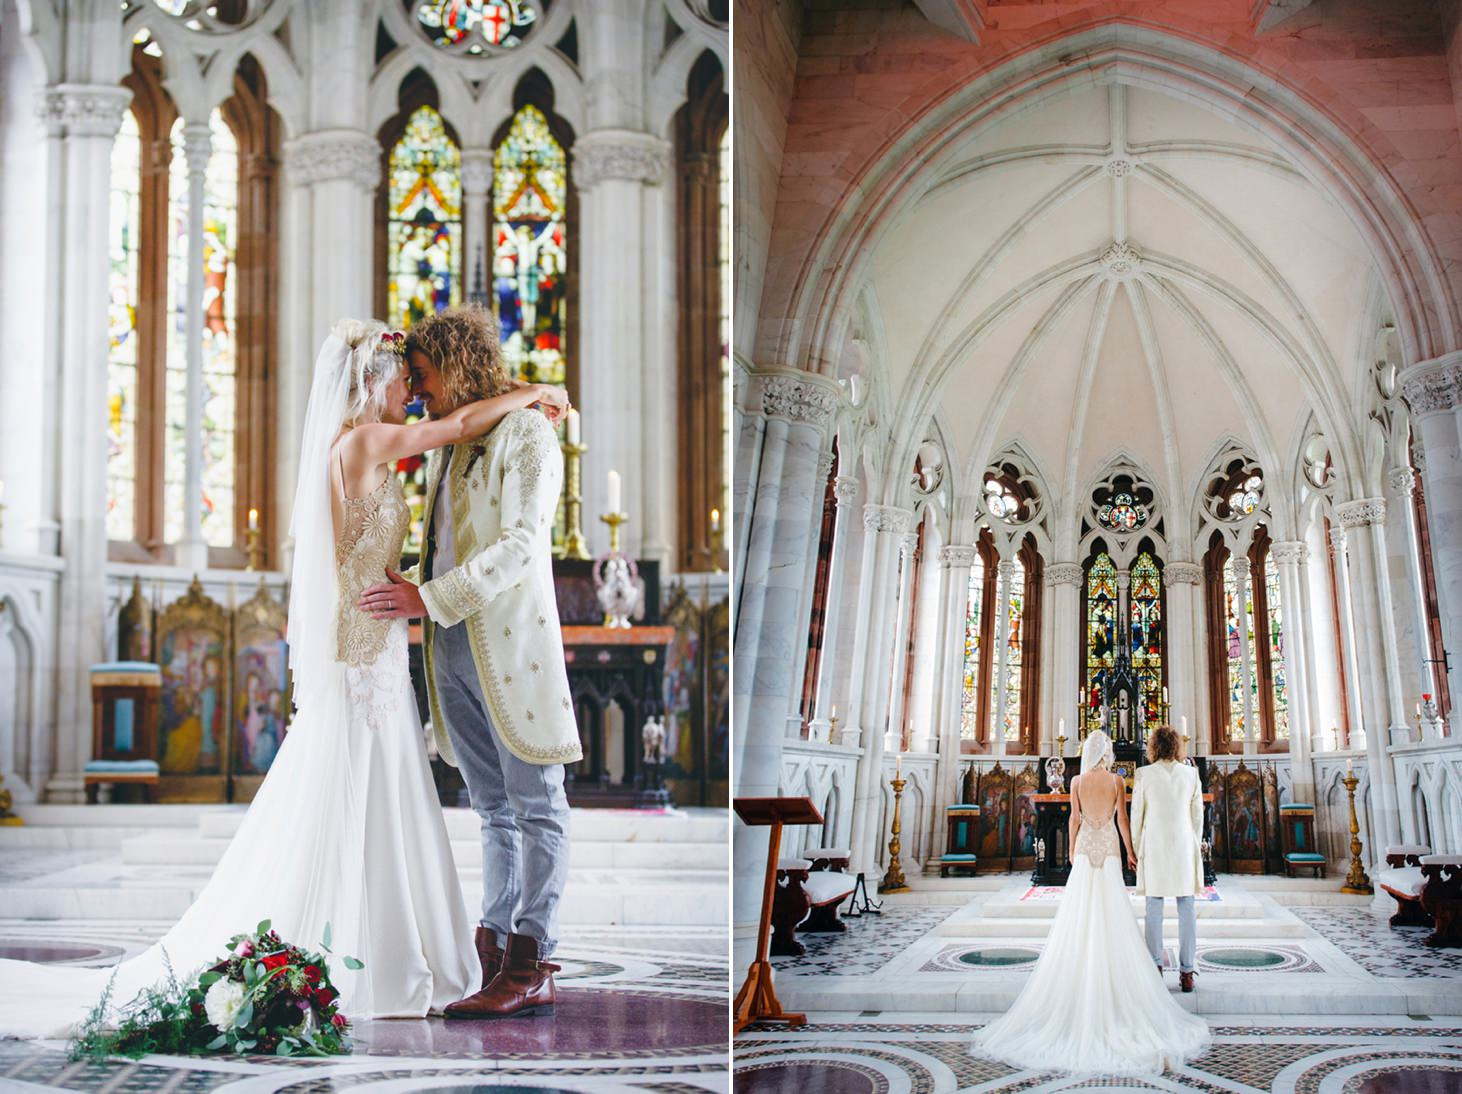 mount stuart wedding photography bride and groom together